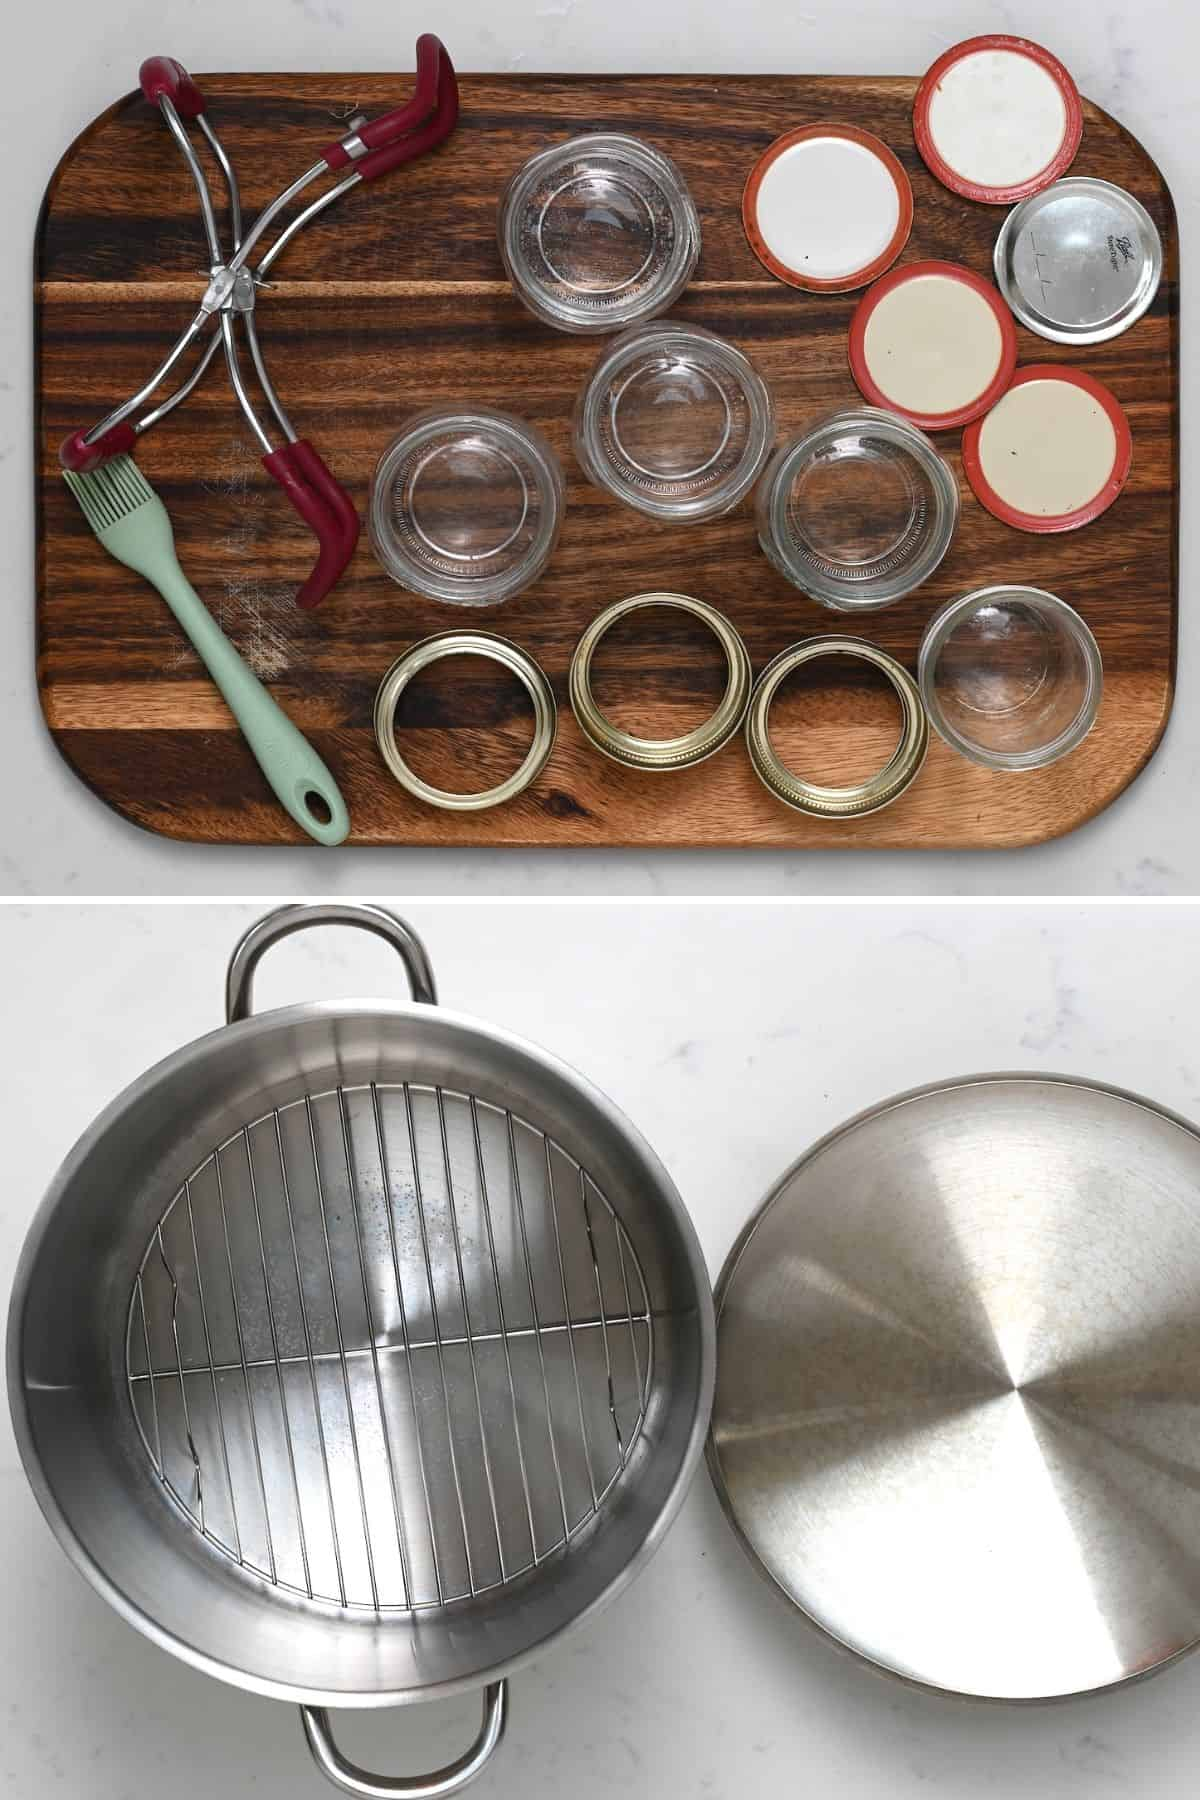 Tools for canning